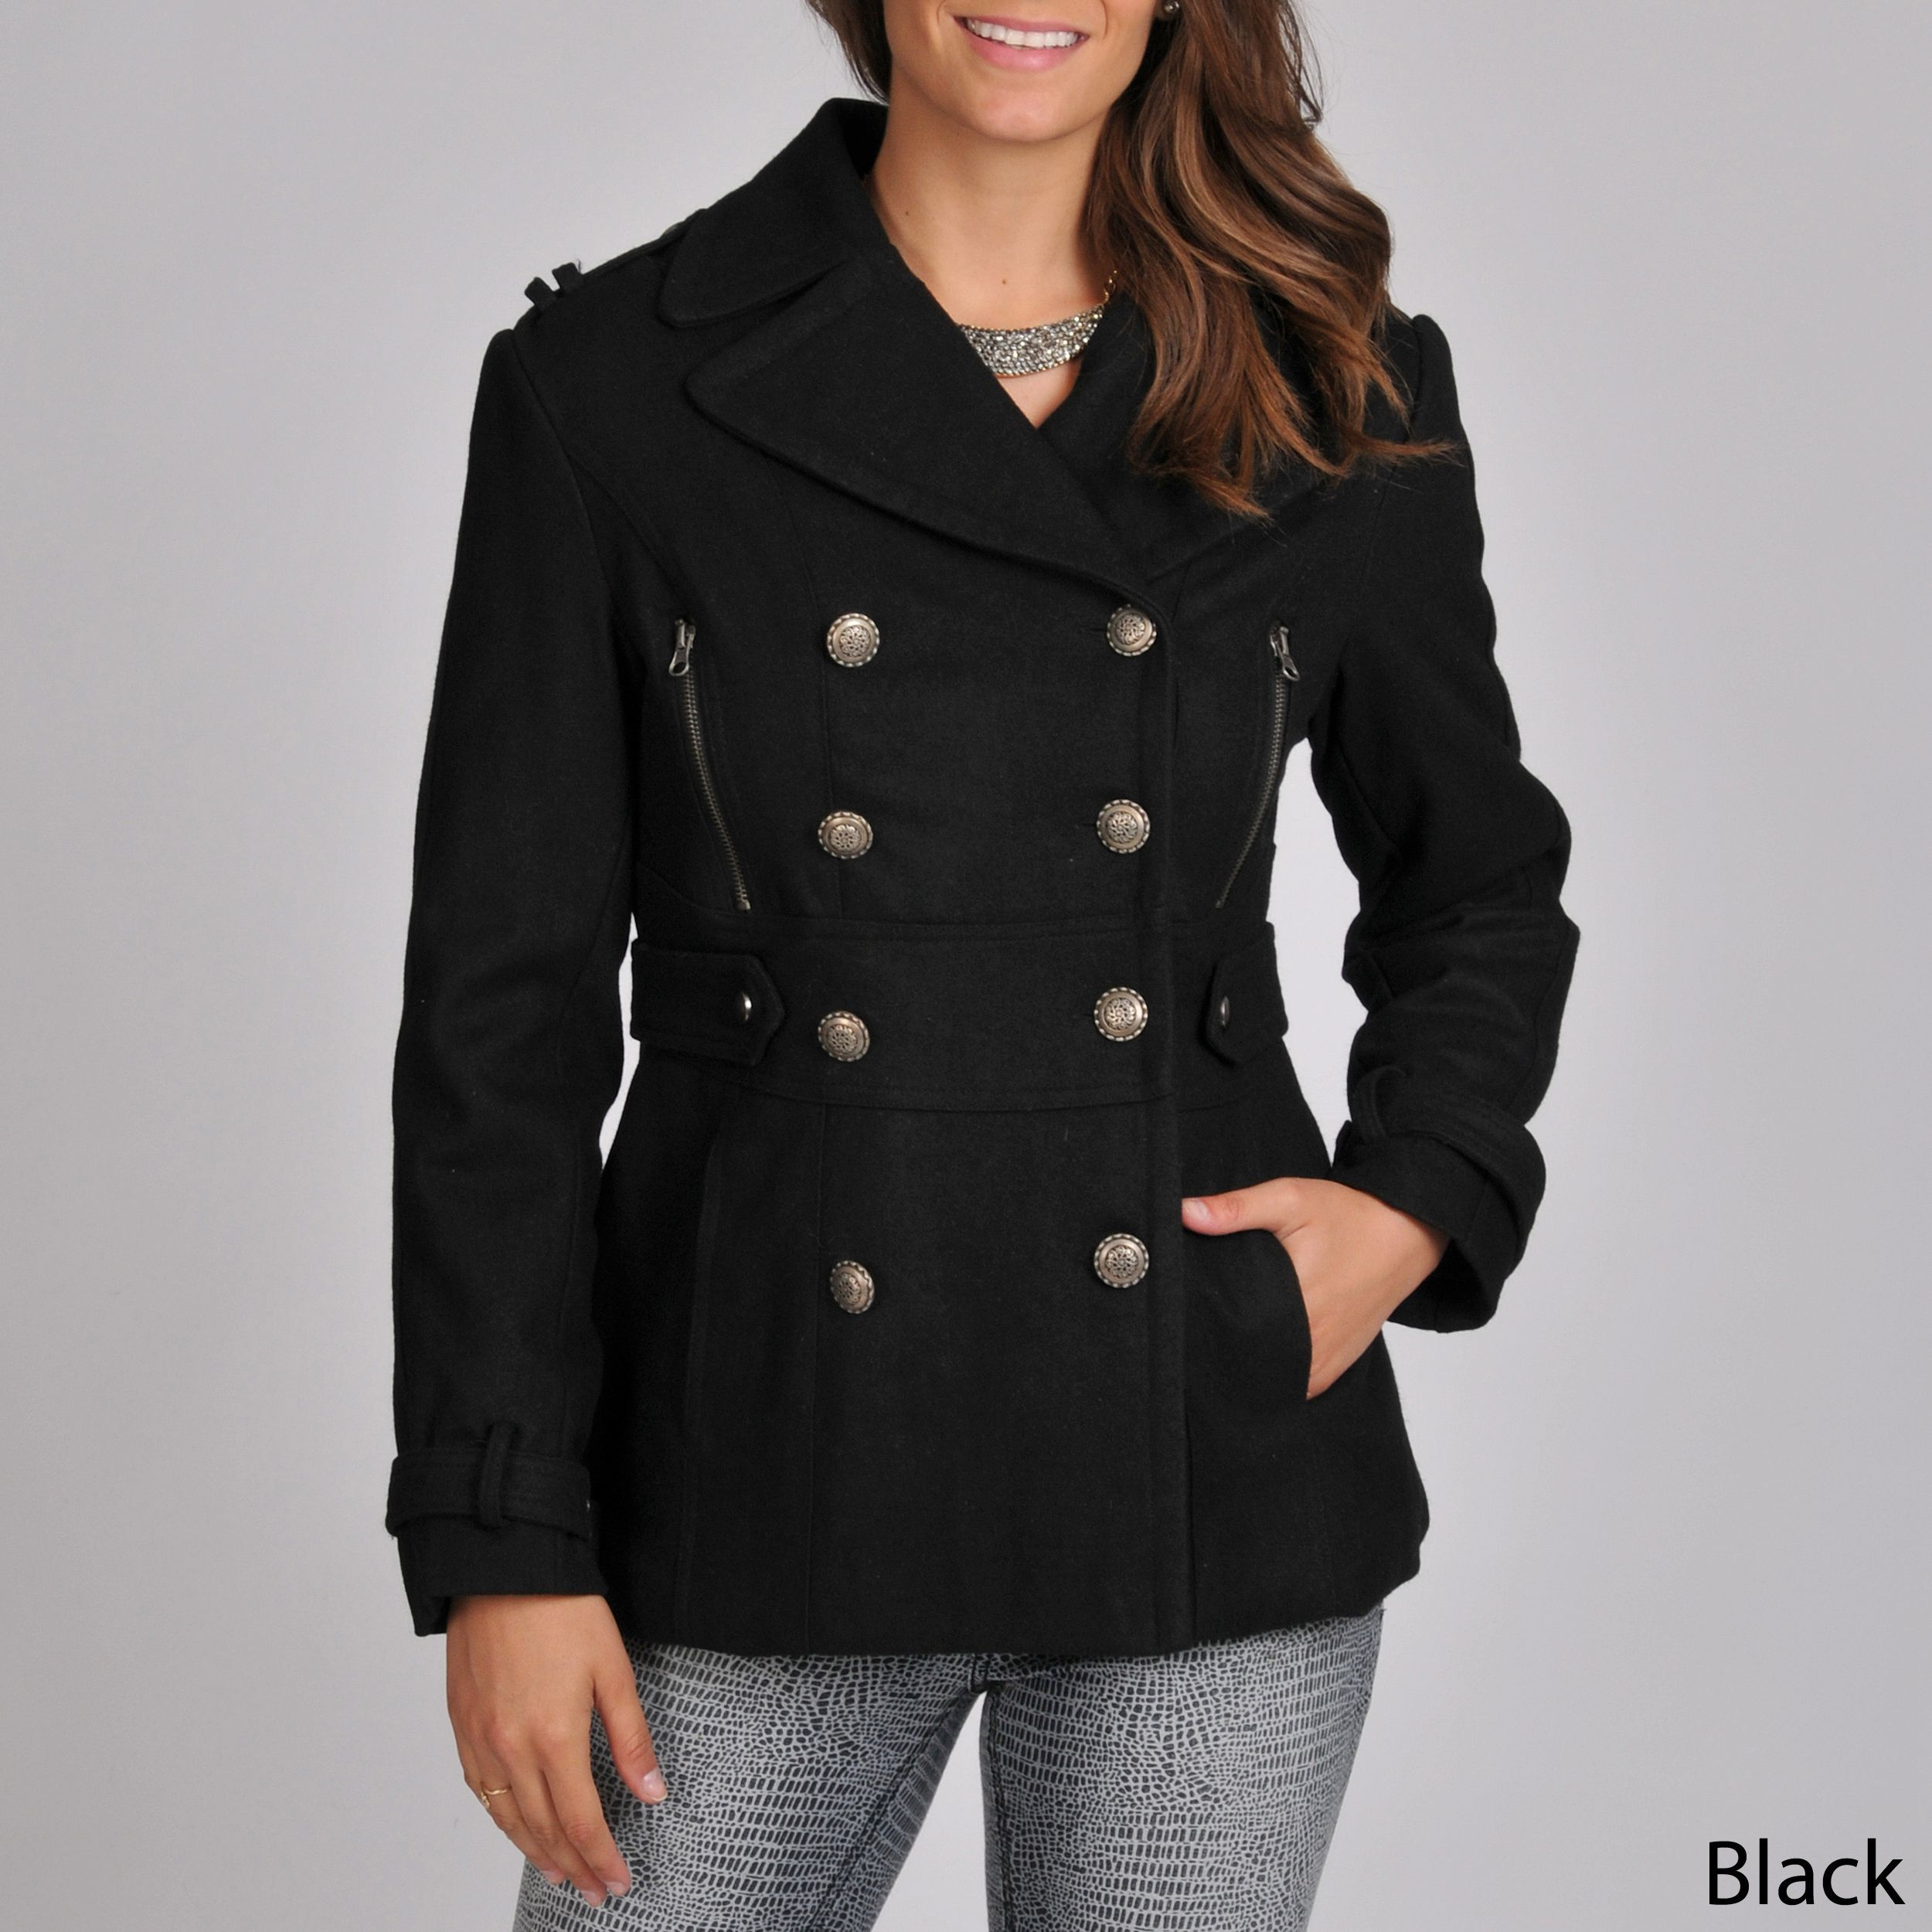 This women's wool blend coat from Excelled features a double-breasted double  front with a